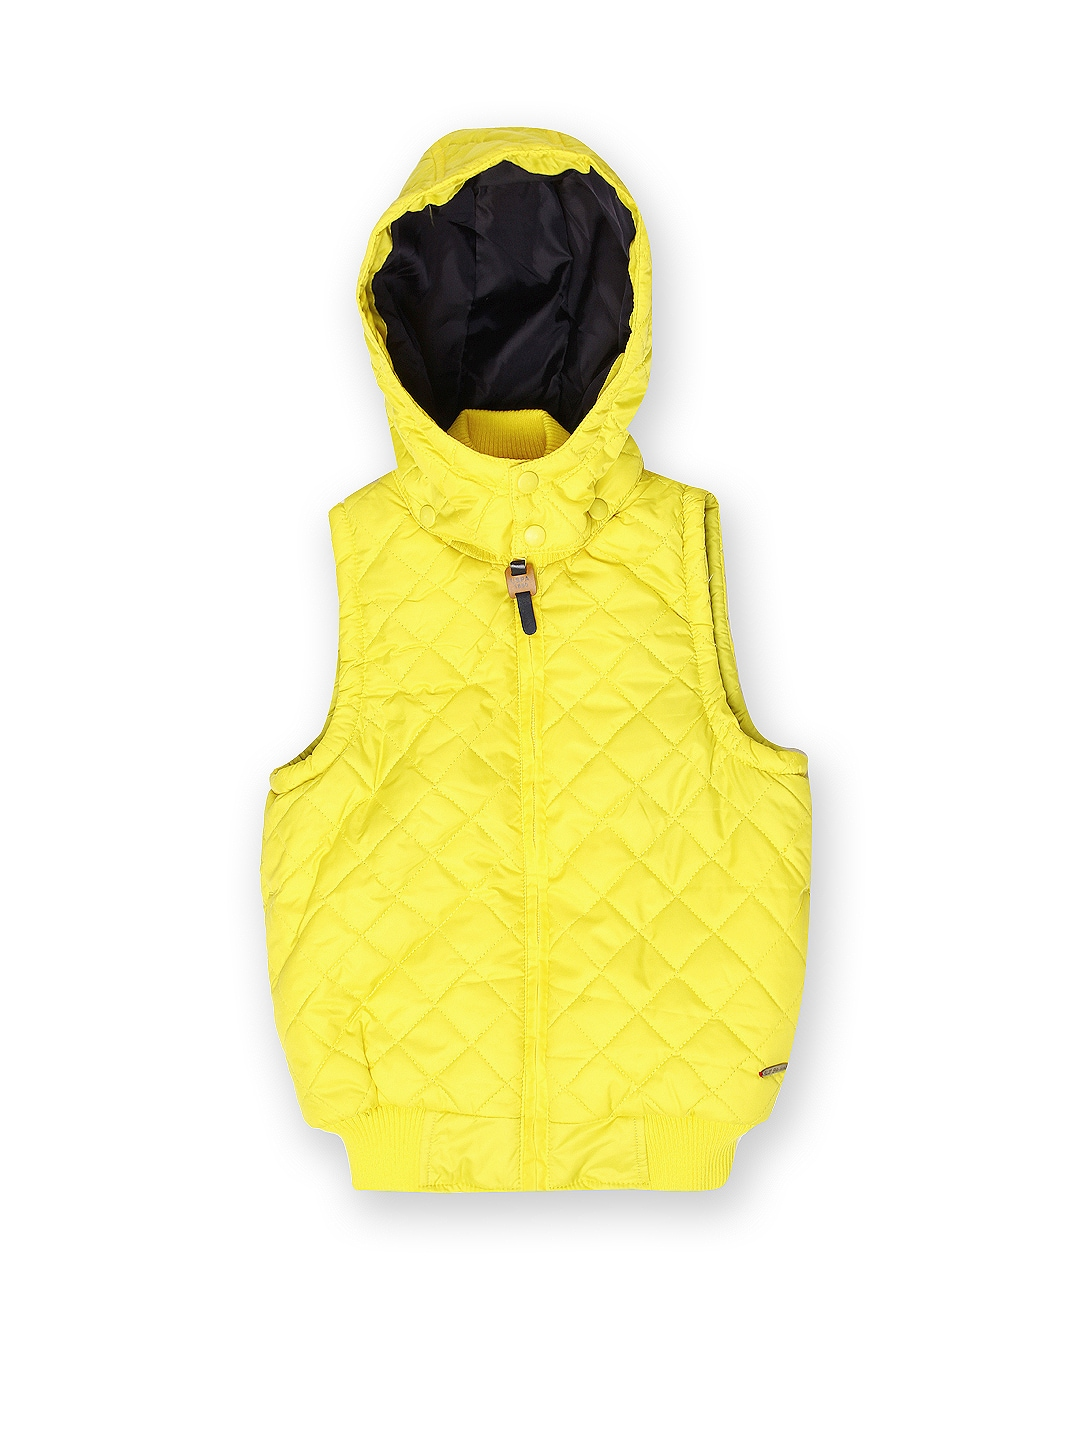 U.S. Polo Assn. Kids Boys Yellow Hooded Padded Jacket